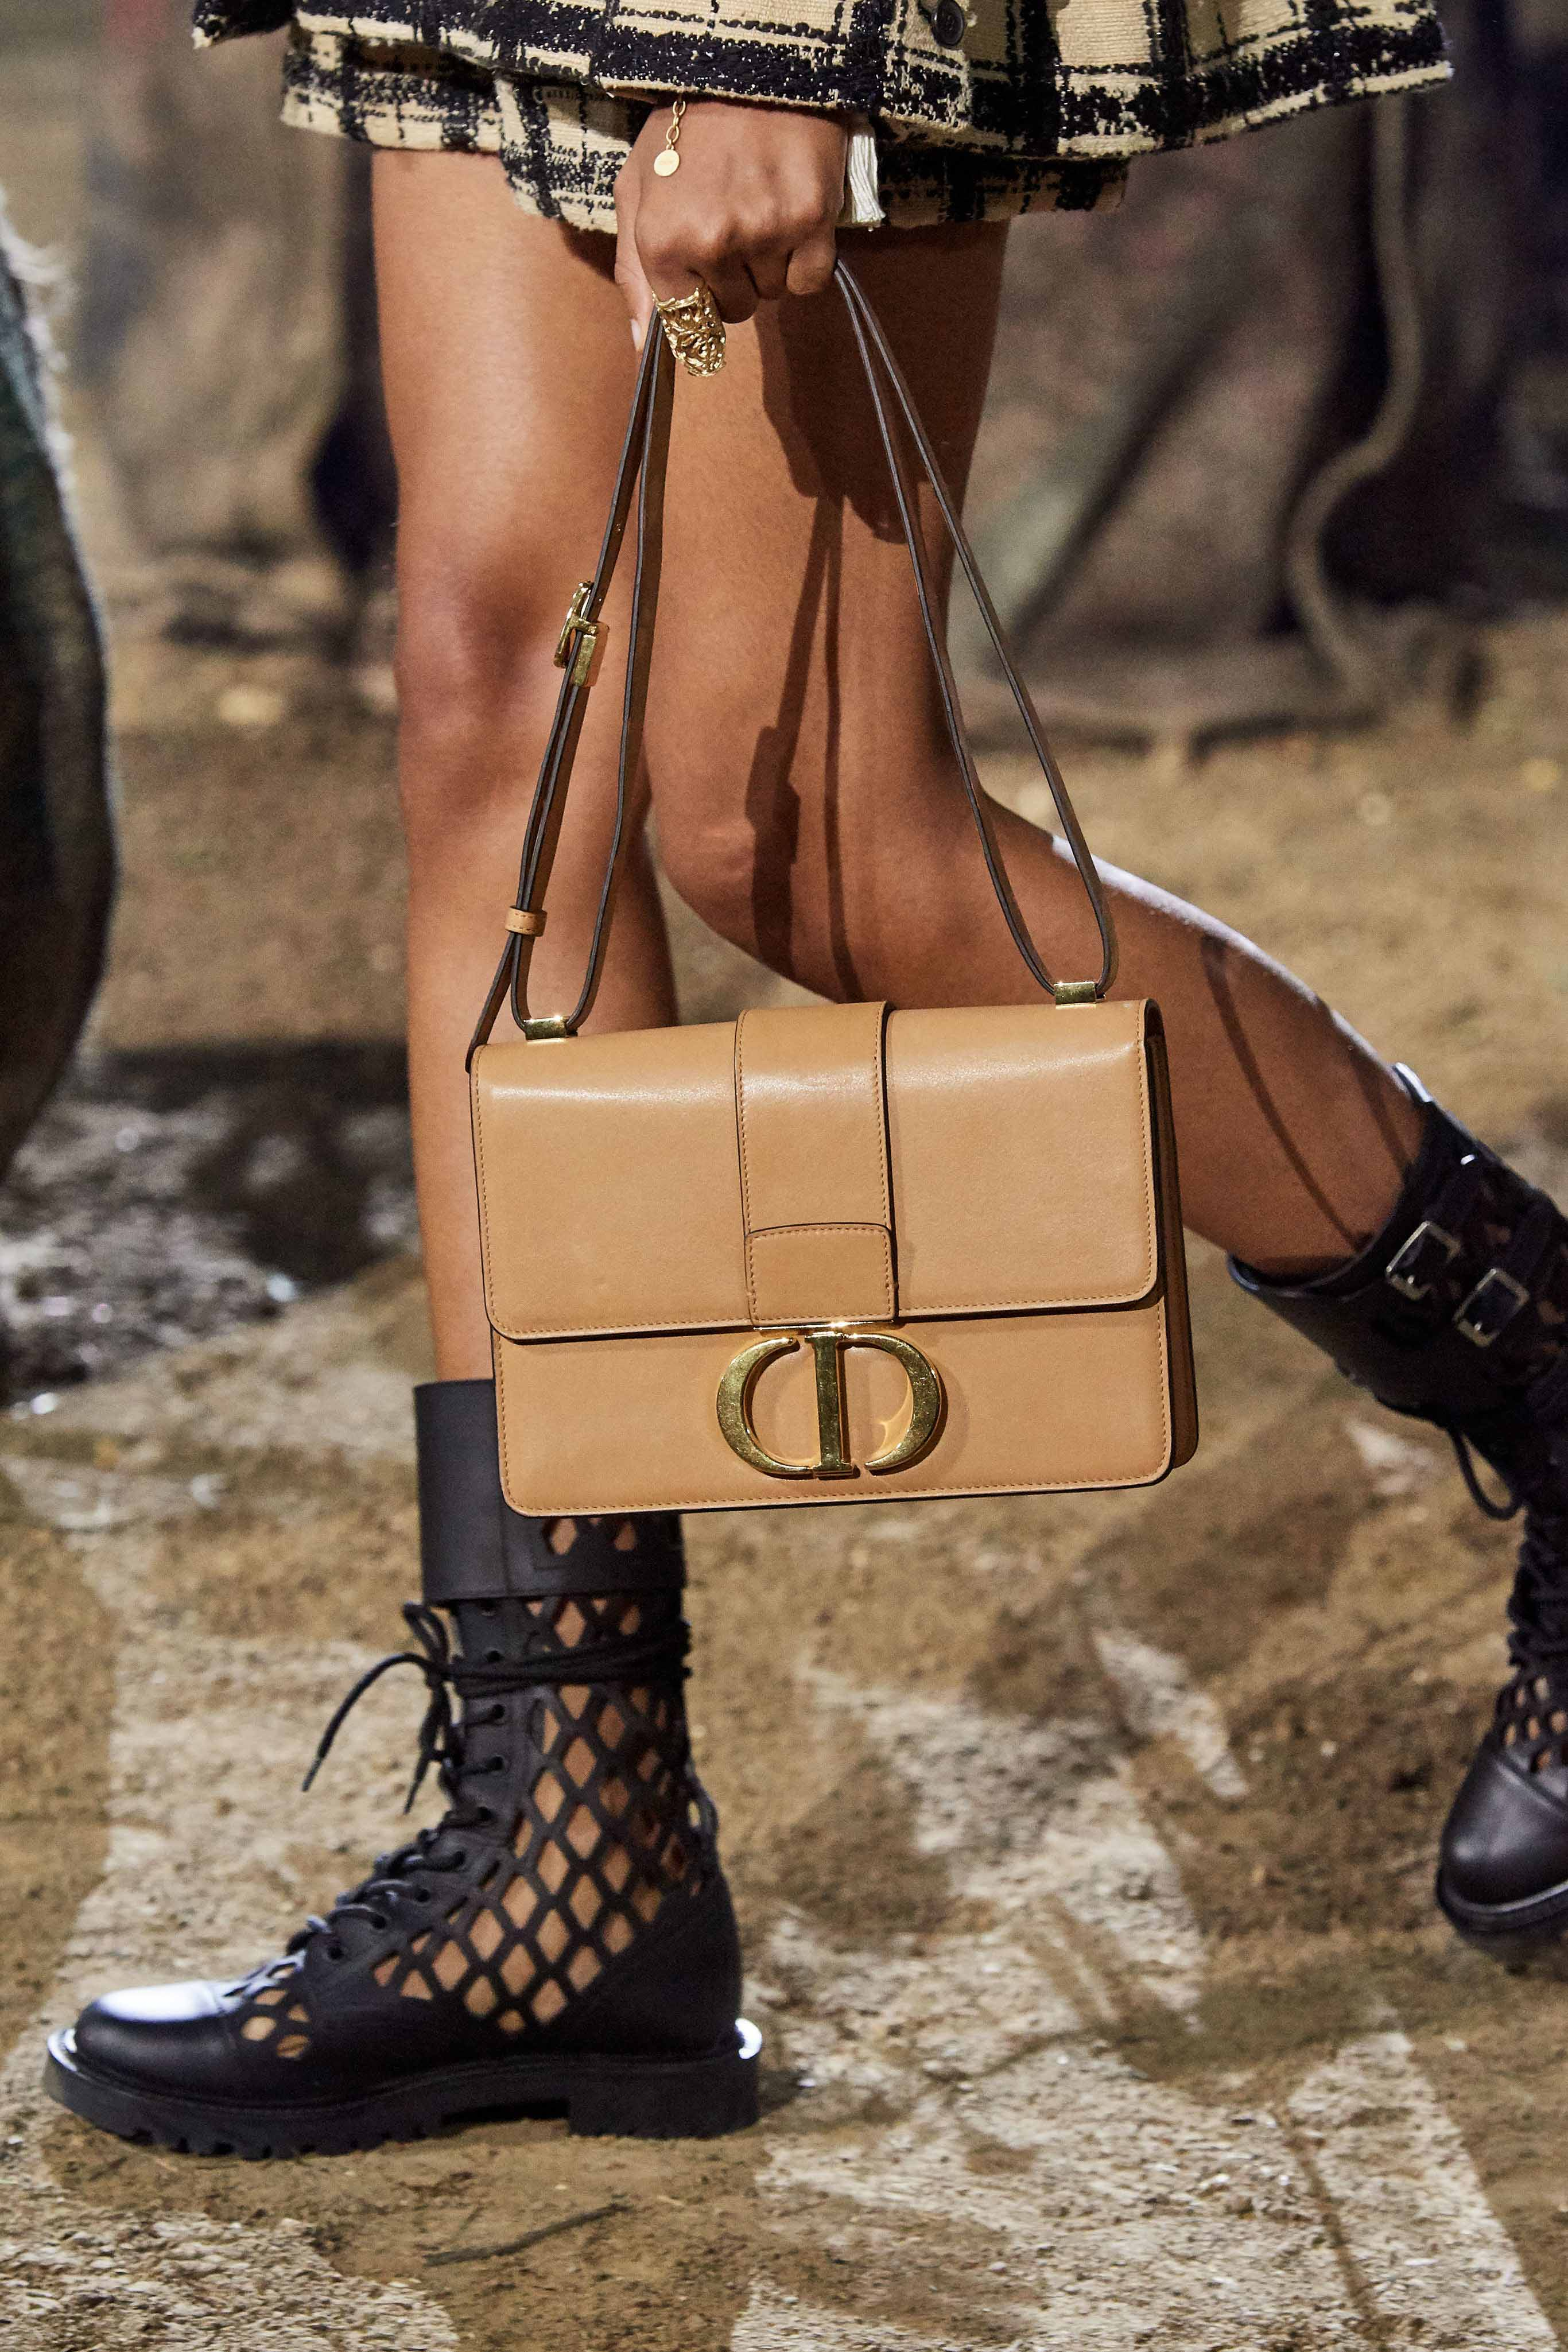 Christian Dior Spring Summer 2020 SS2020 trends runway coverage Ready To Wear Vogue details bag